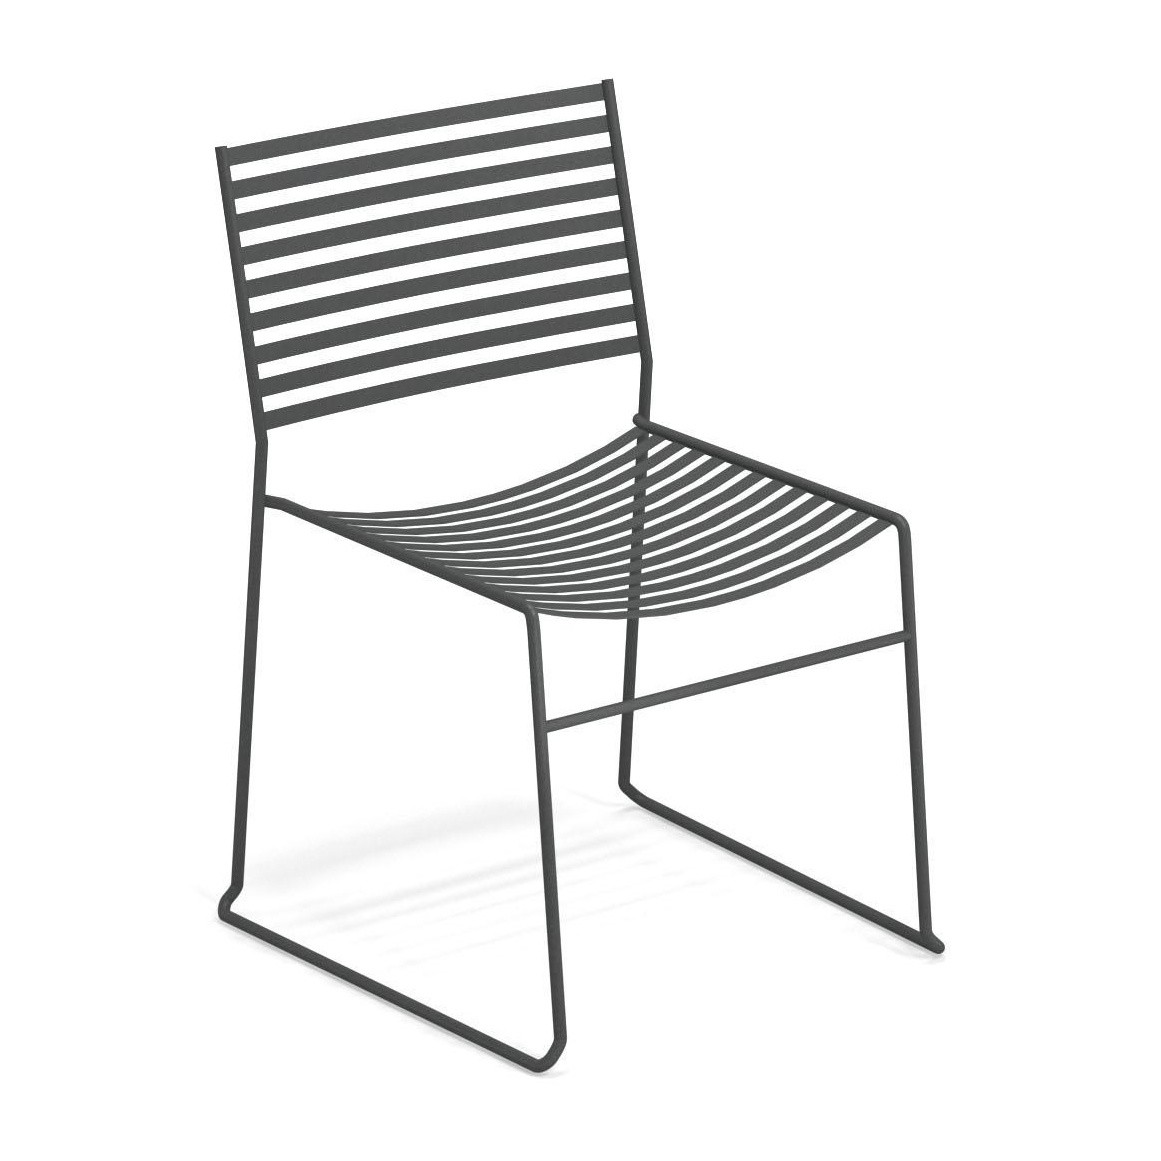 Outstanding Aero Gartenstuhl Theyellowbook Wood Chair Design Ideas Theyellowbookinfo